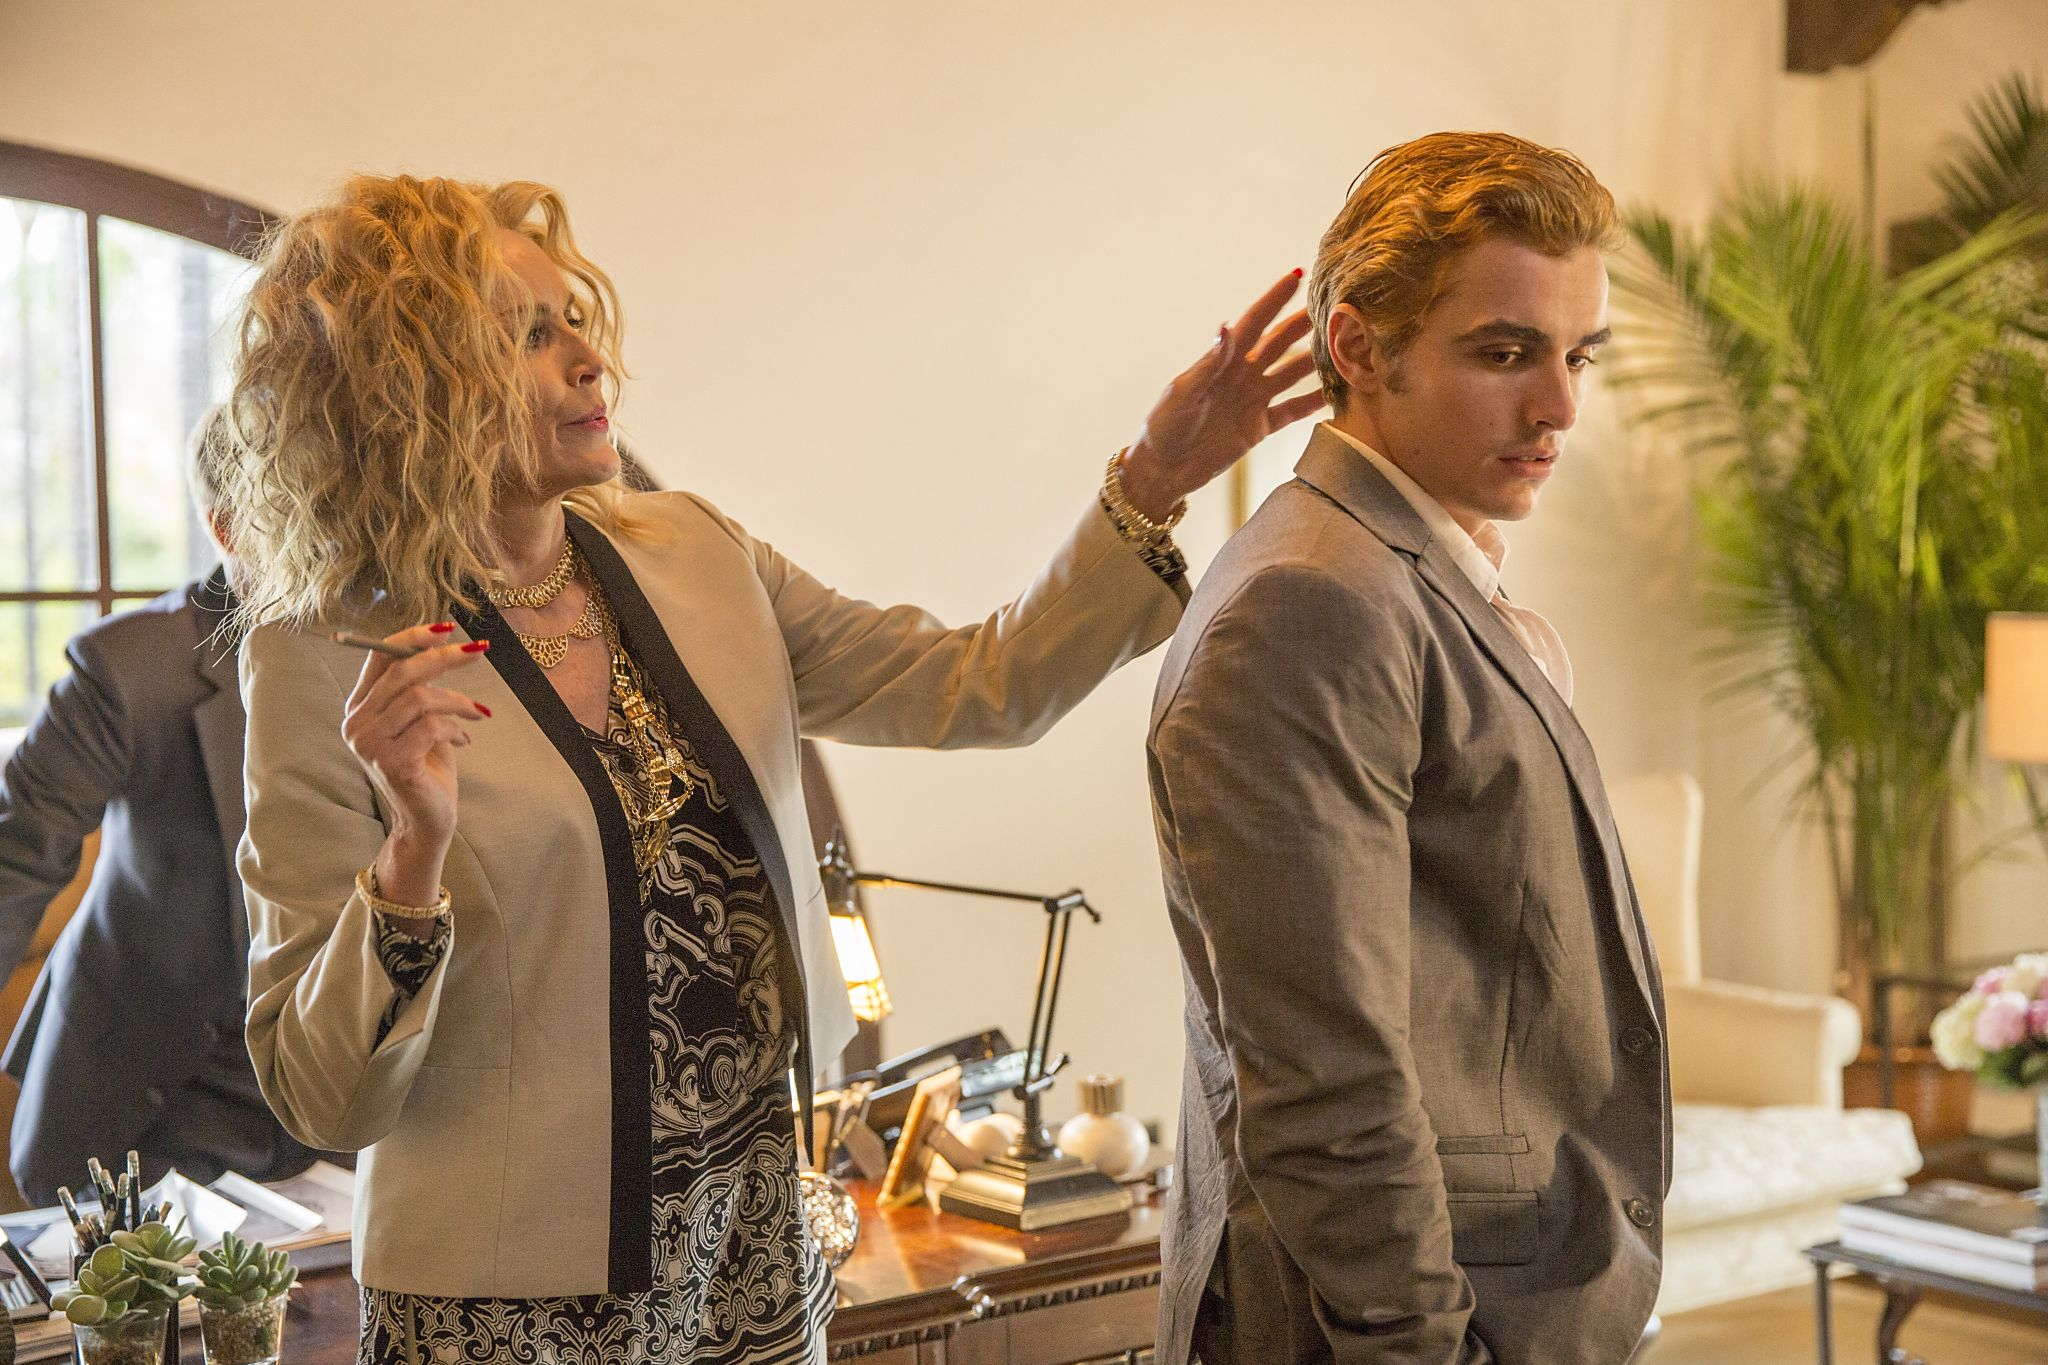 Sharon Stone and Dave Franco